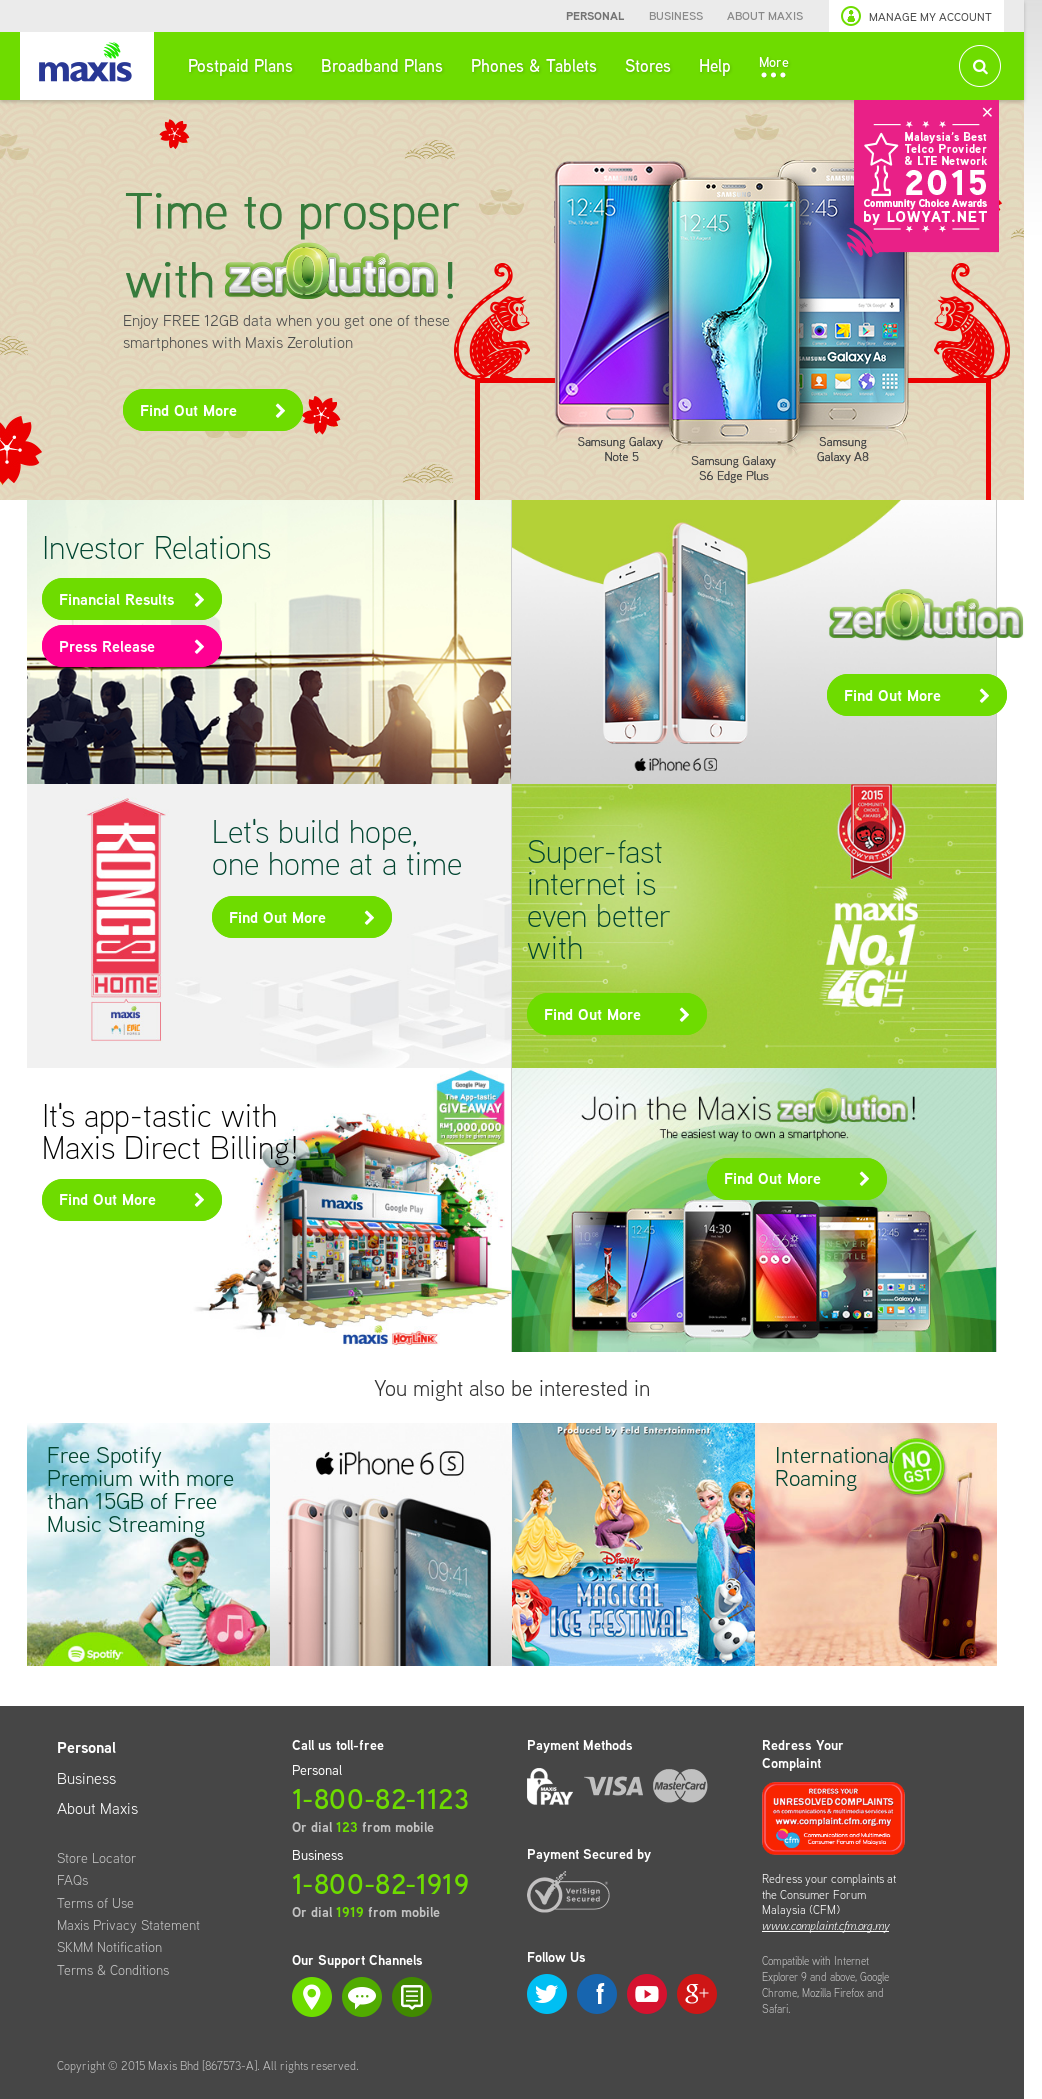 Maxis's Latest News, Blogs, Press Releases & Videos